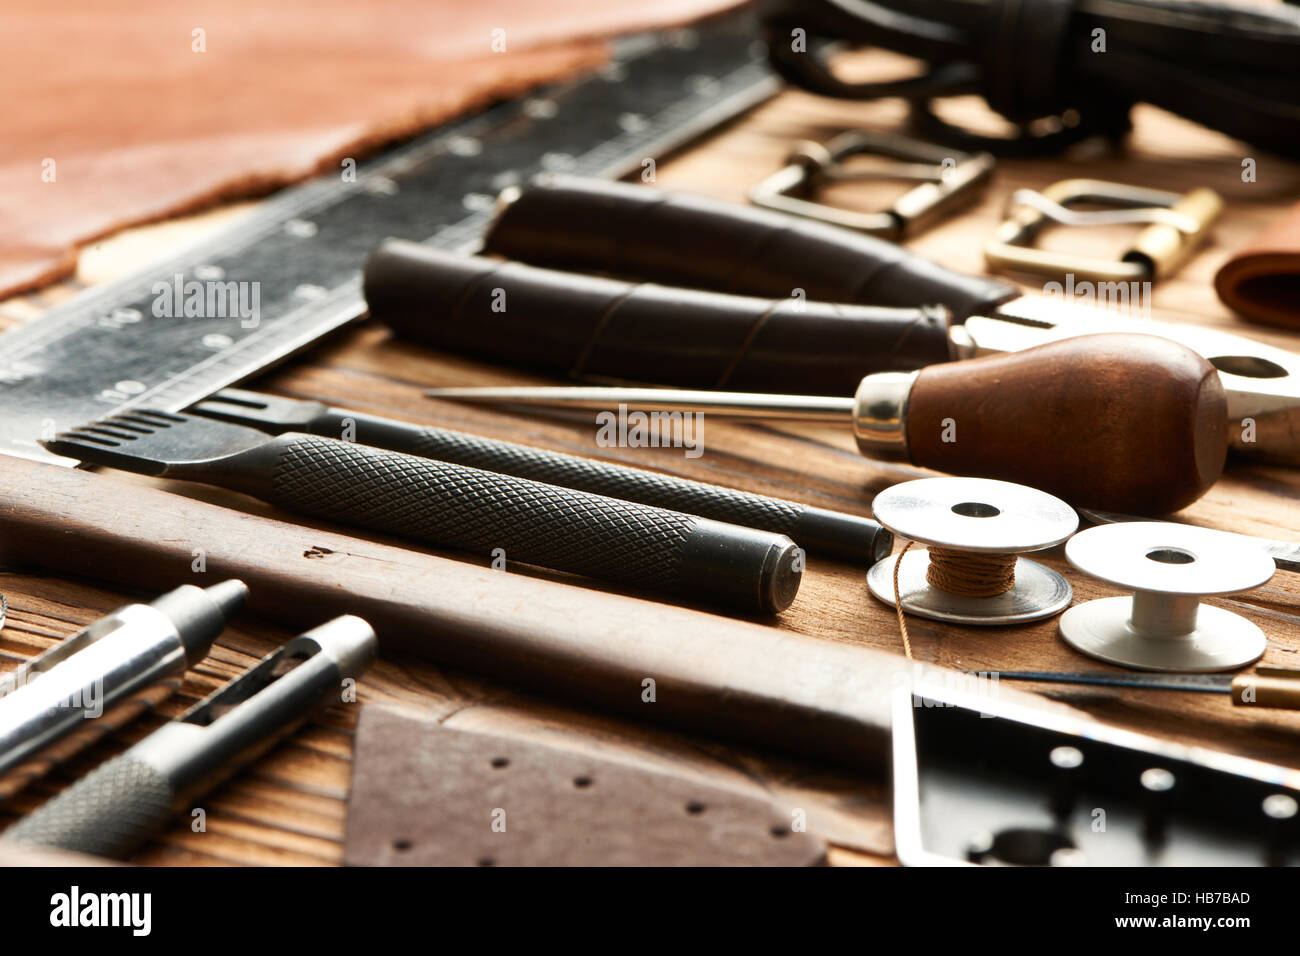 Leather crafting tools Stock Photo